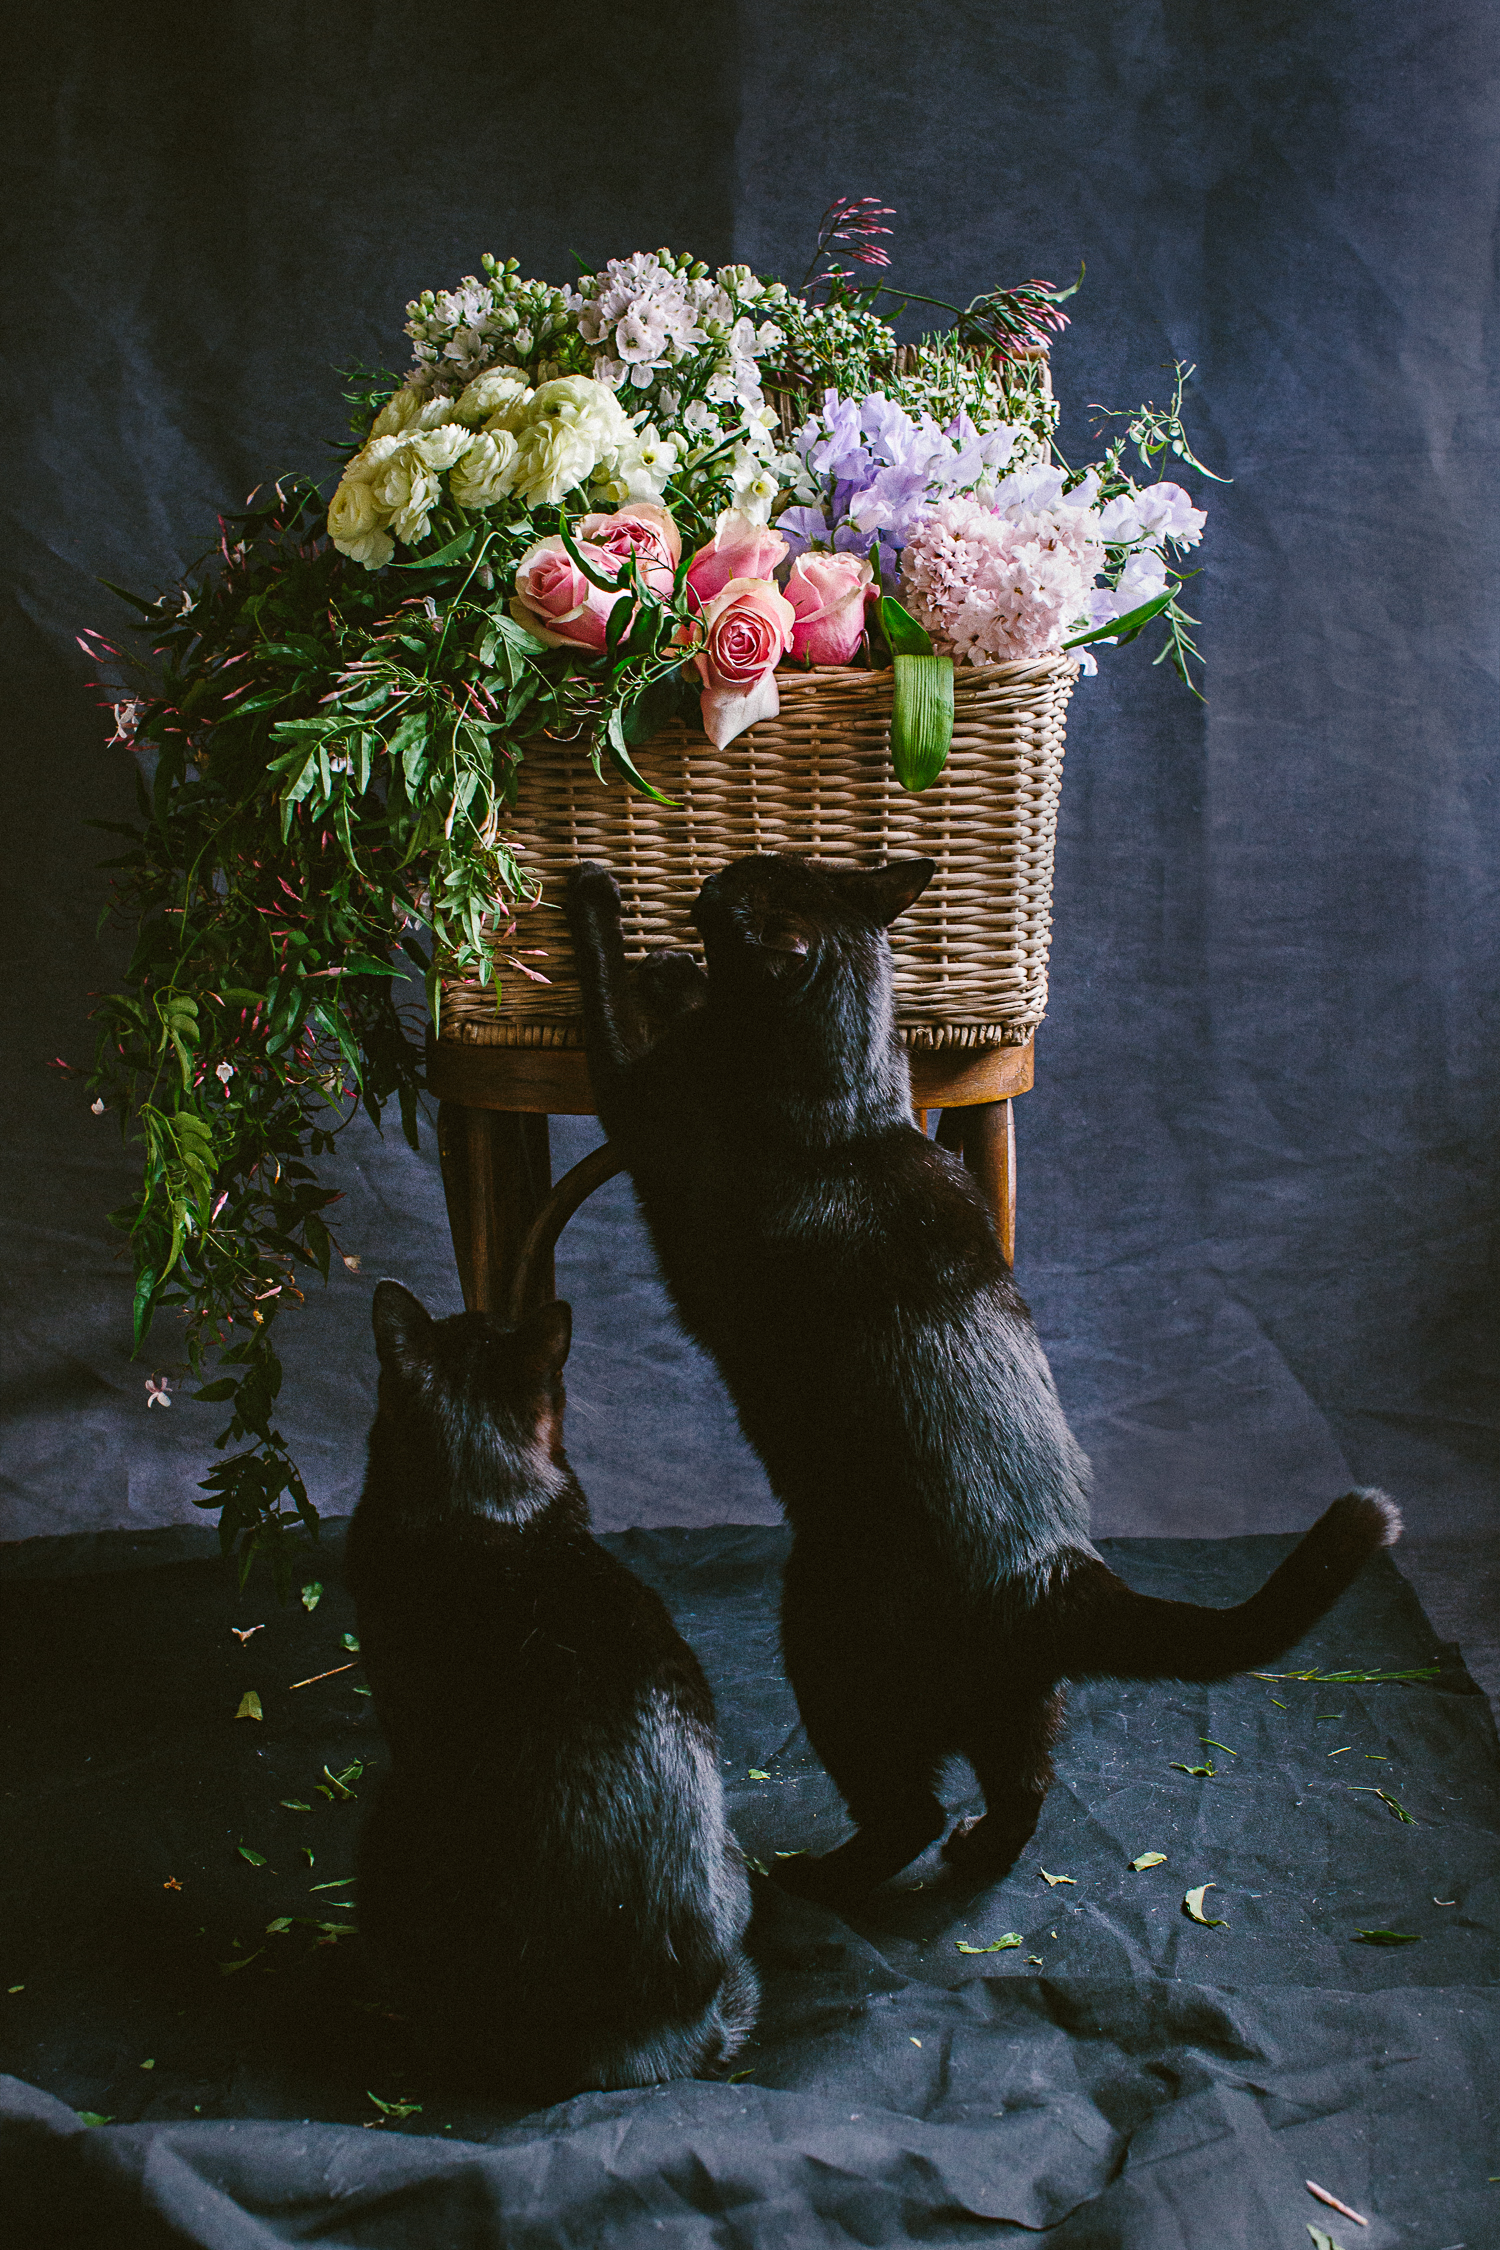 twoguineapigs_photography_ruby_slippers_cat_and_floral_series_1500-22.jpg